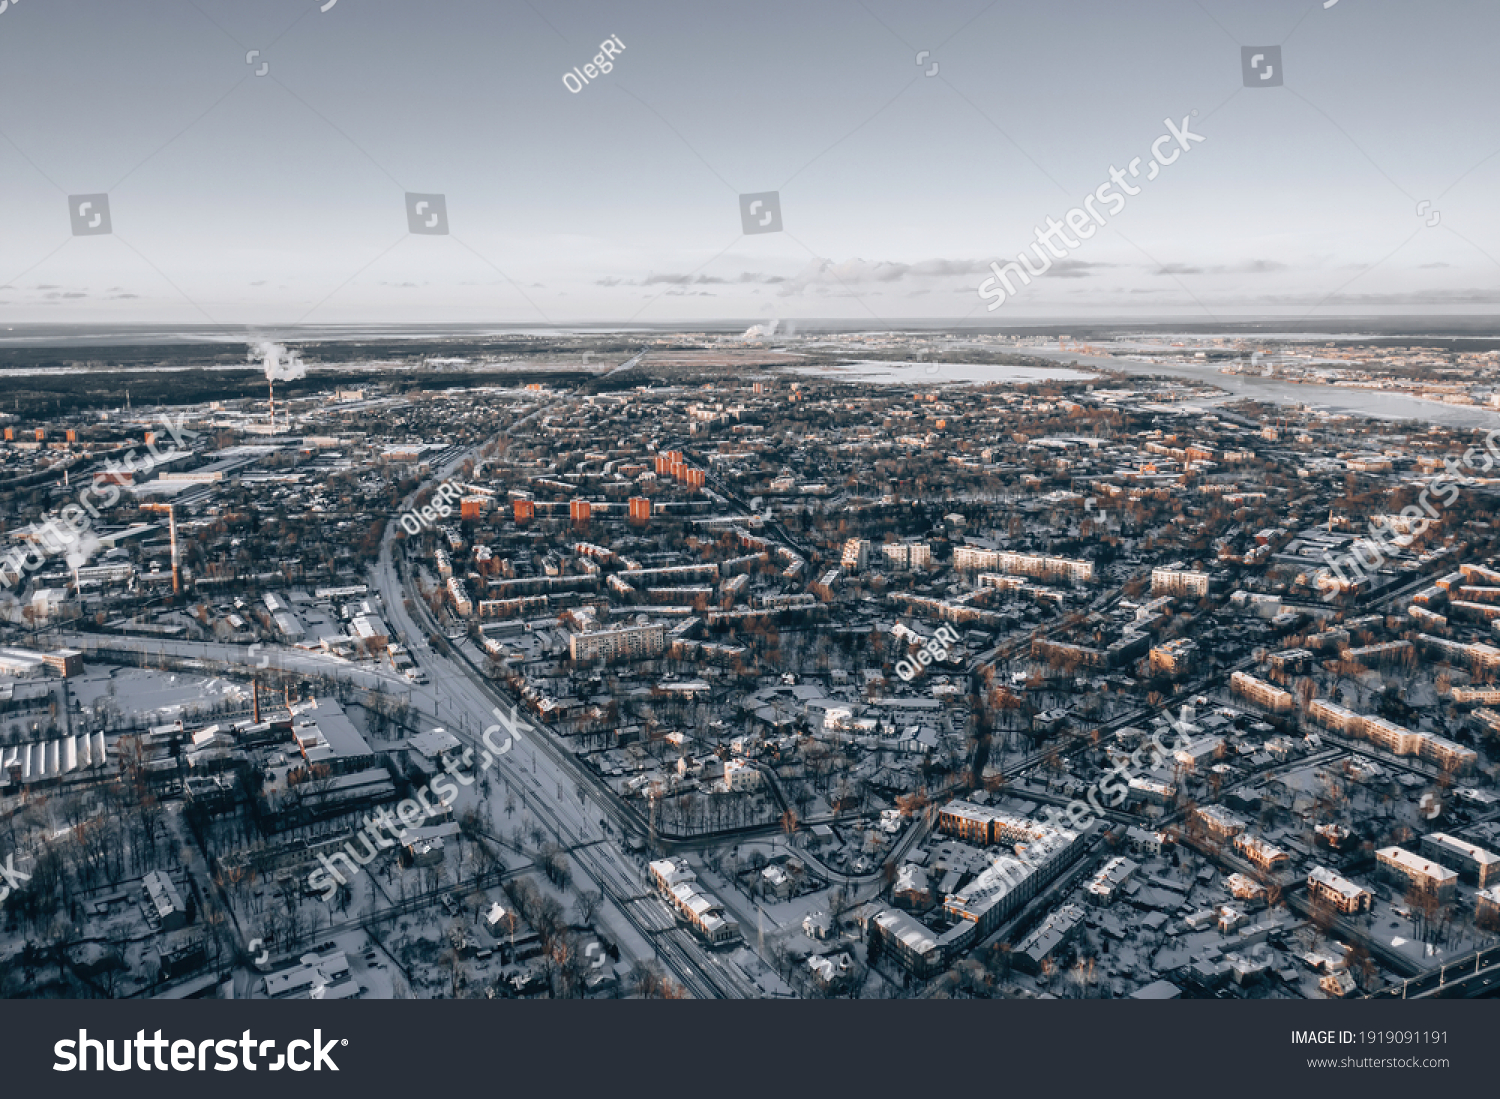 View at city from bird sight. City from drone. Aerial photo. City scape from drone #1919091191